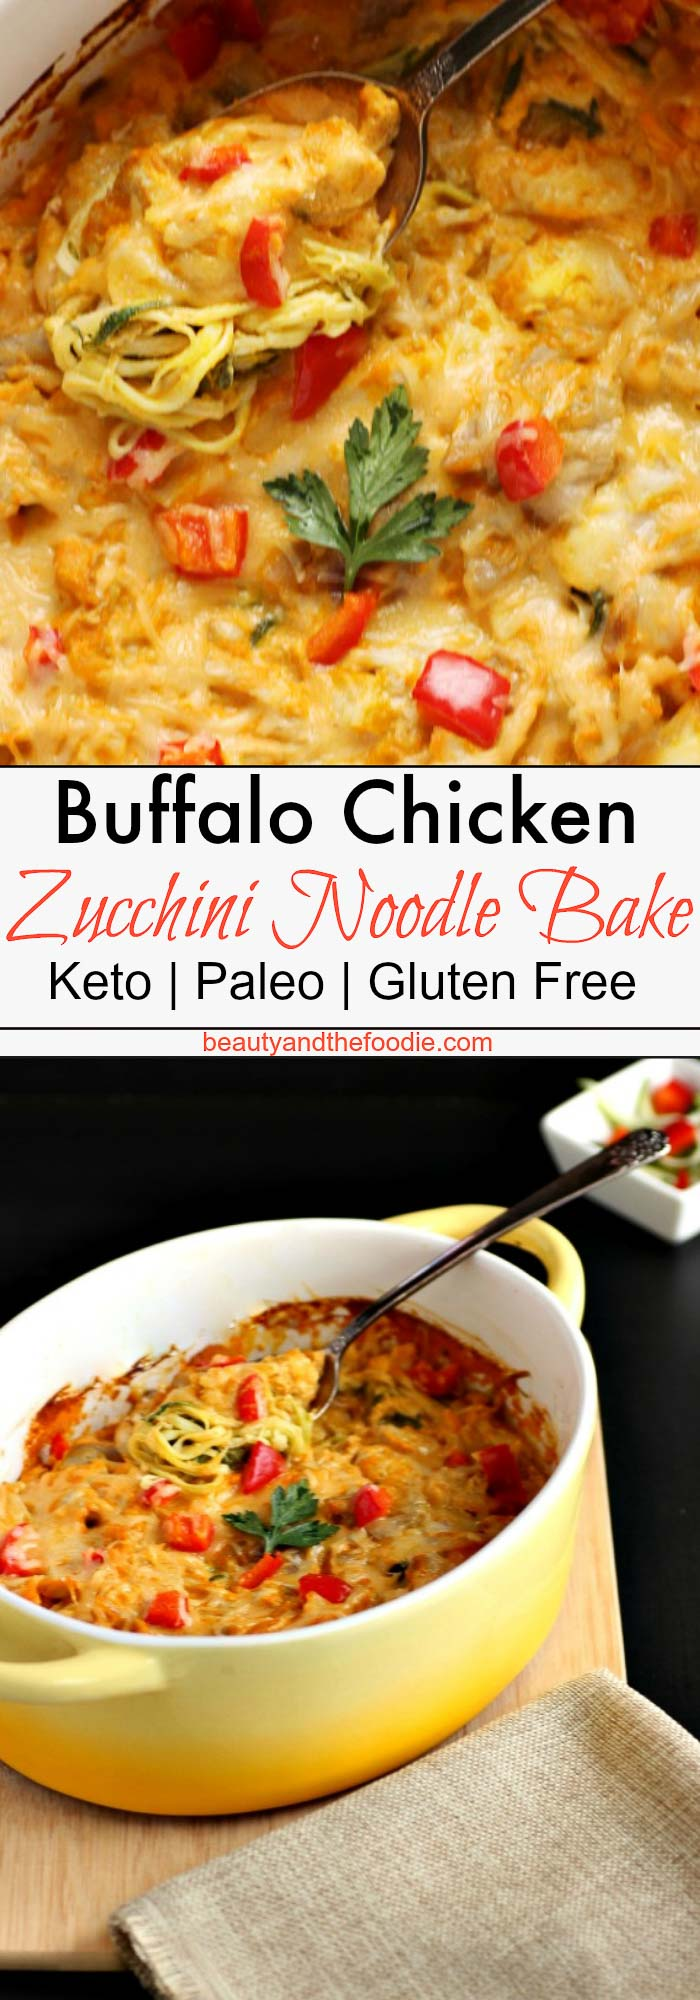 Creamy Buffalo Chicken Zucchini Noodle Bake- Low Carb, Keto and Gluten Free